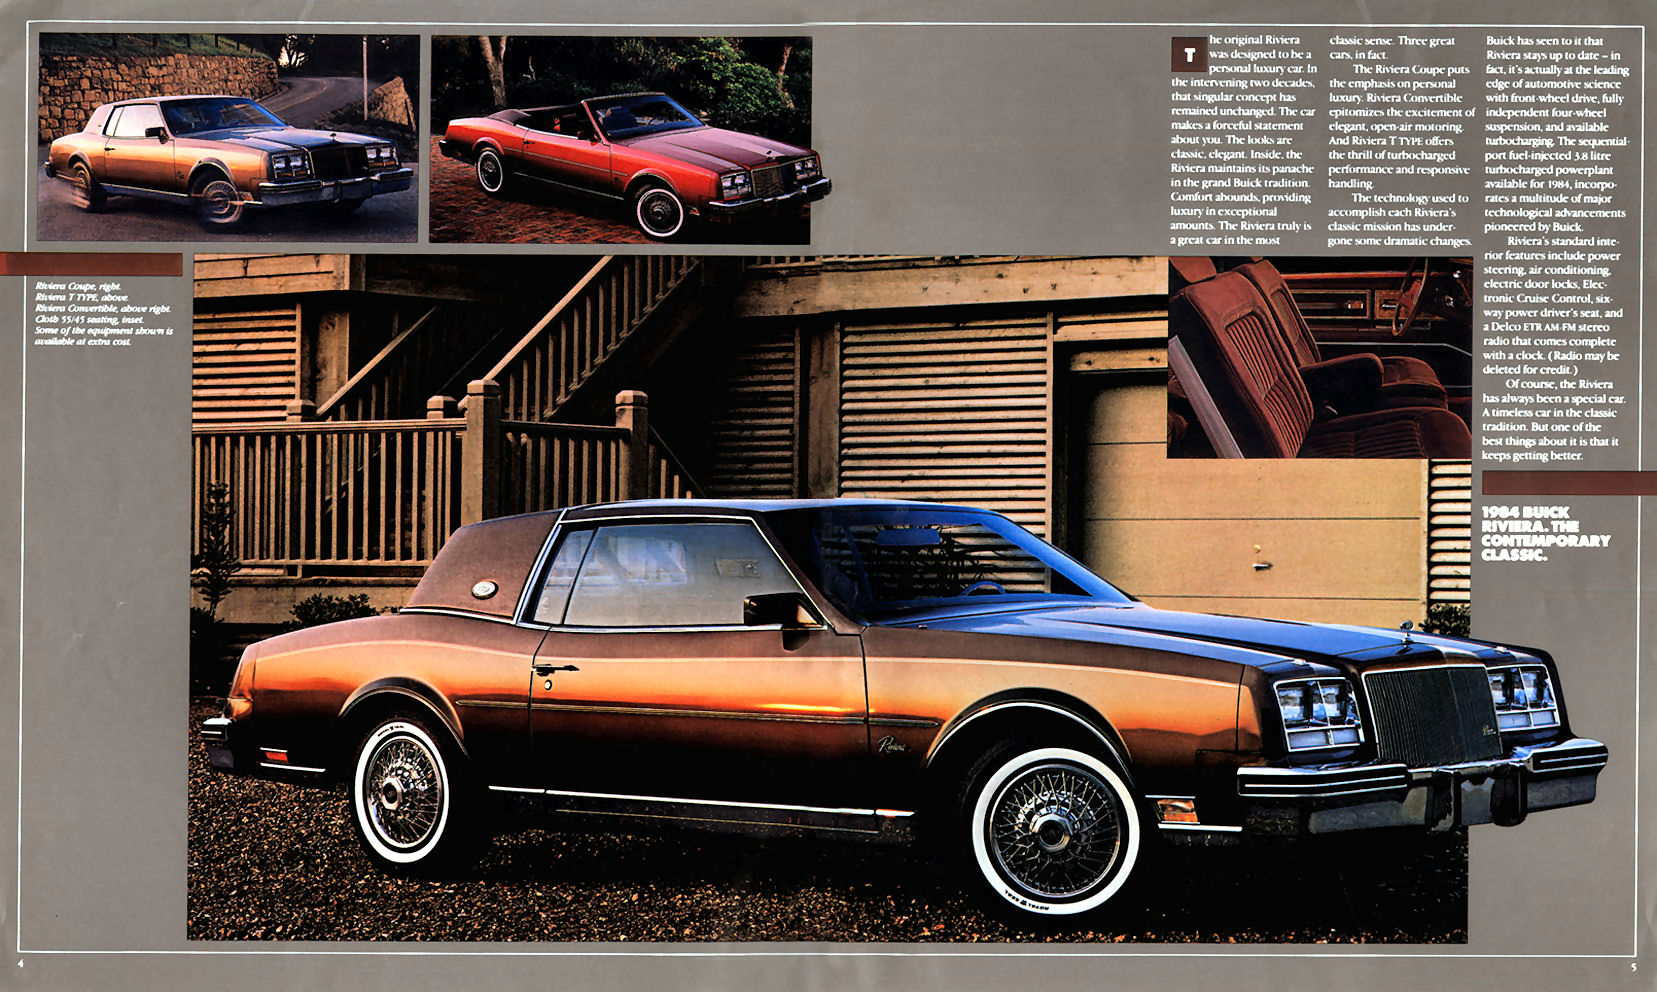 1984 buick riviera t type coupe eighties cars. Black Bedroom Furniture Sets. Home Design Ideas